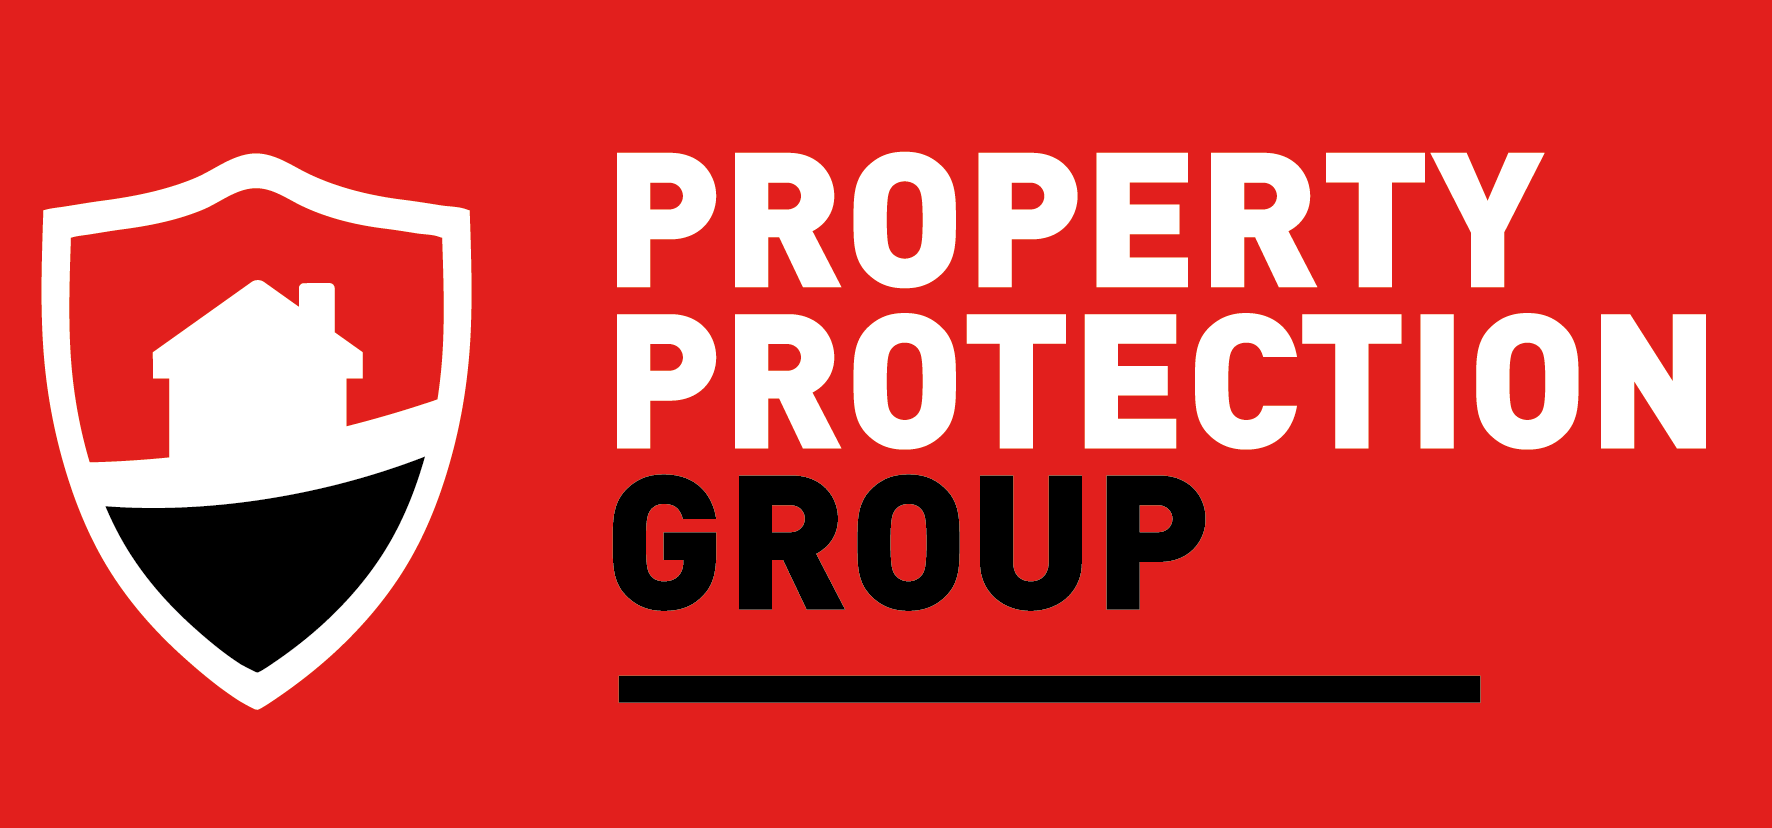 Property Protection Group